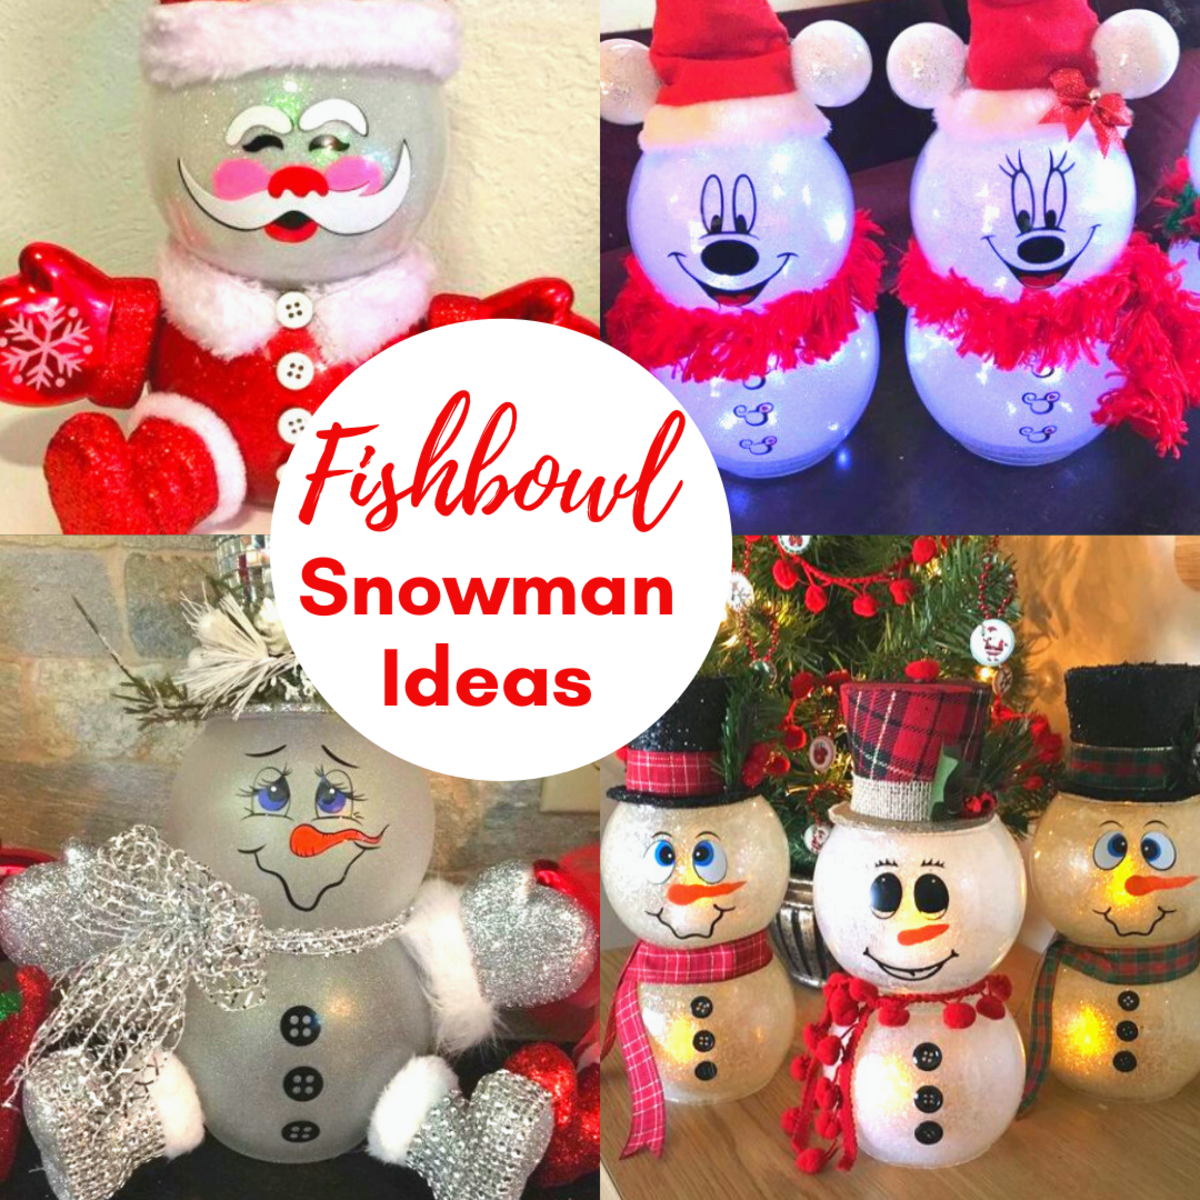 Fish Bowl Snowman Ideas